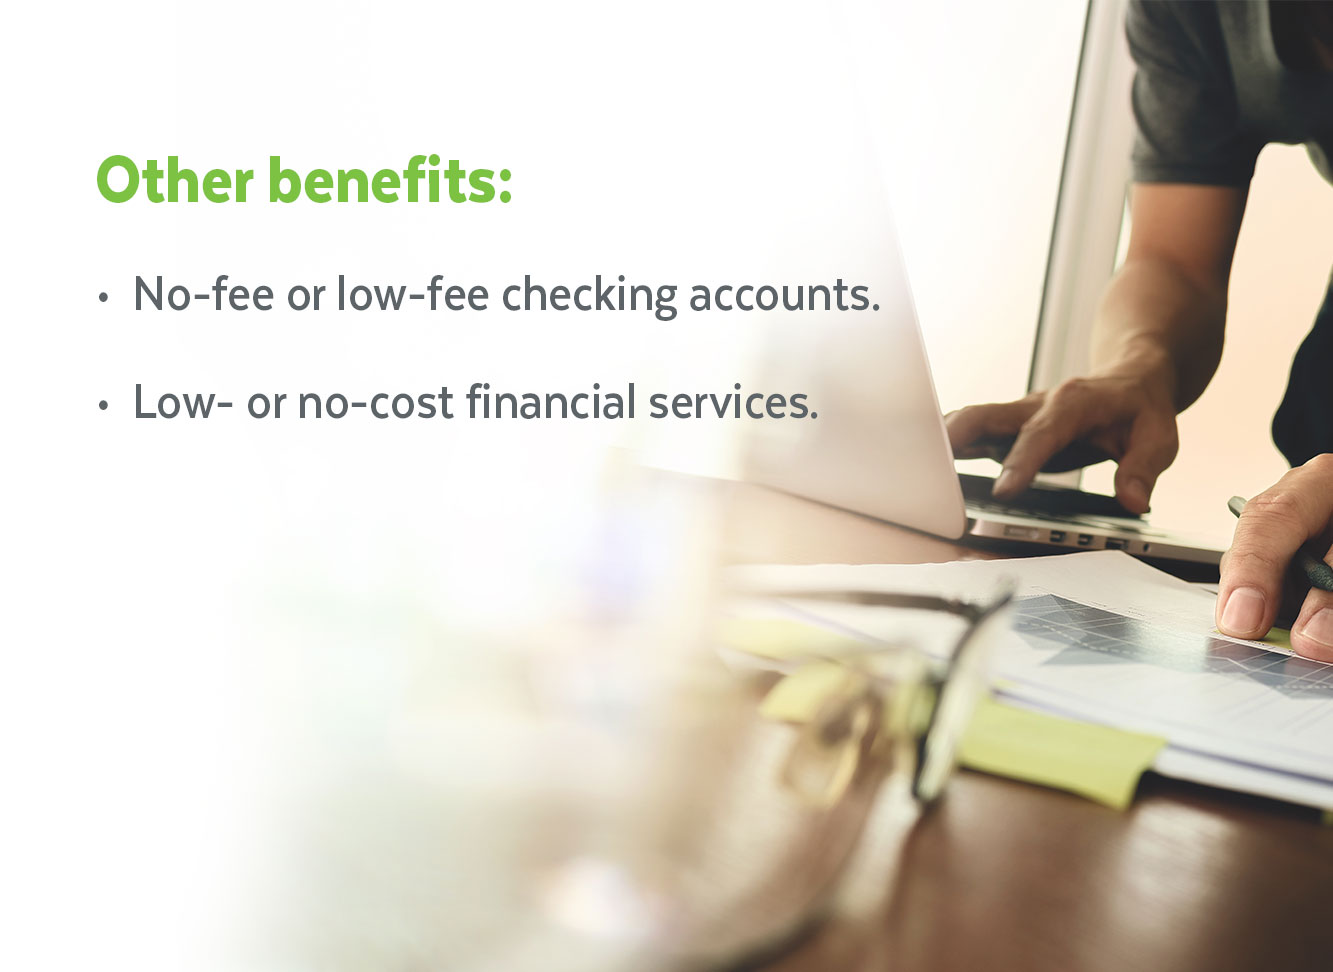 Nusenda also offers no-fee or no-cost checking options